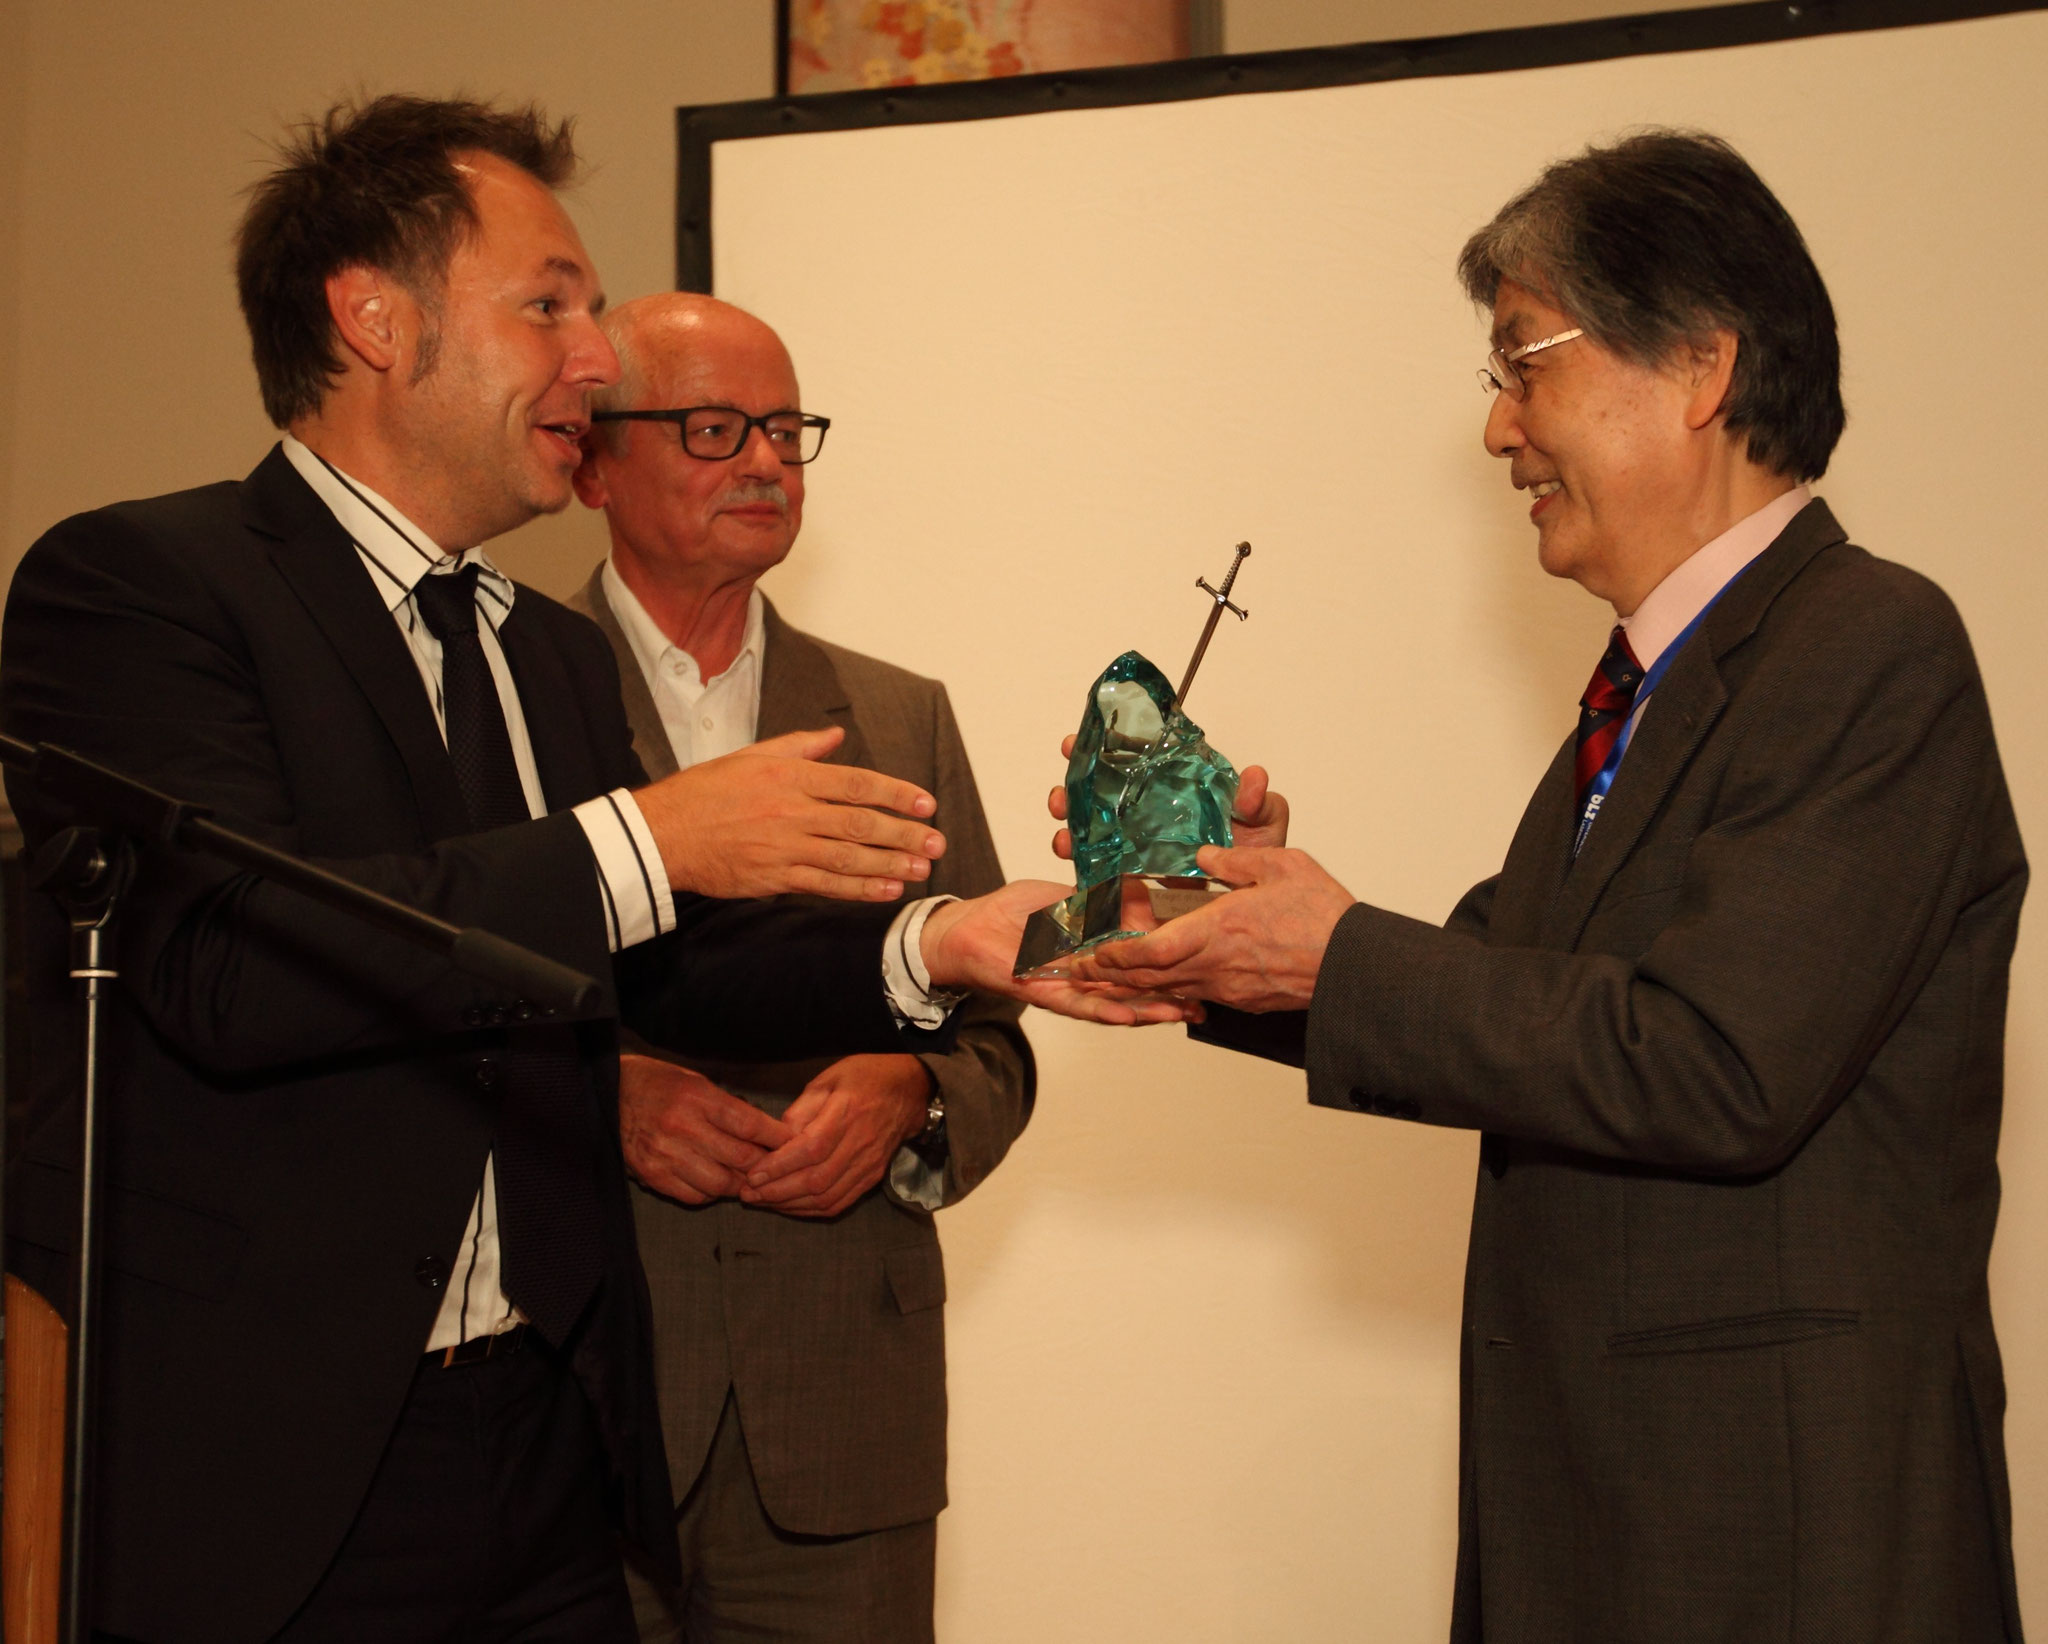 """Conference chair Prof. Michael Schmidt, """"old"""" Knight of Laser Technology Prof. Manfred Geiger and """"new"""" Knight of Laser Technology Prof. Isamu Miyamoto during the Conference Banquet  in 2014 (from left to right)"""